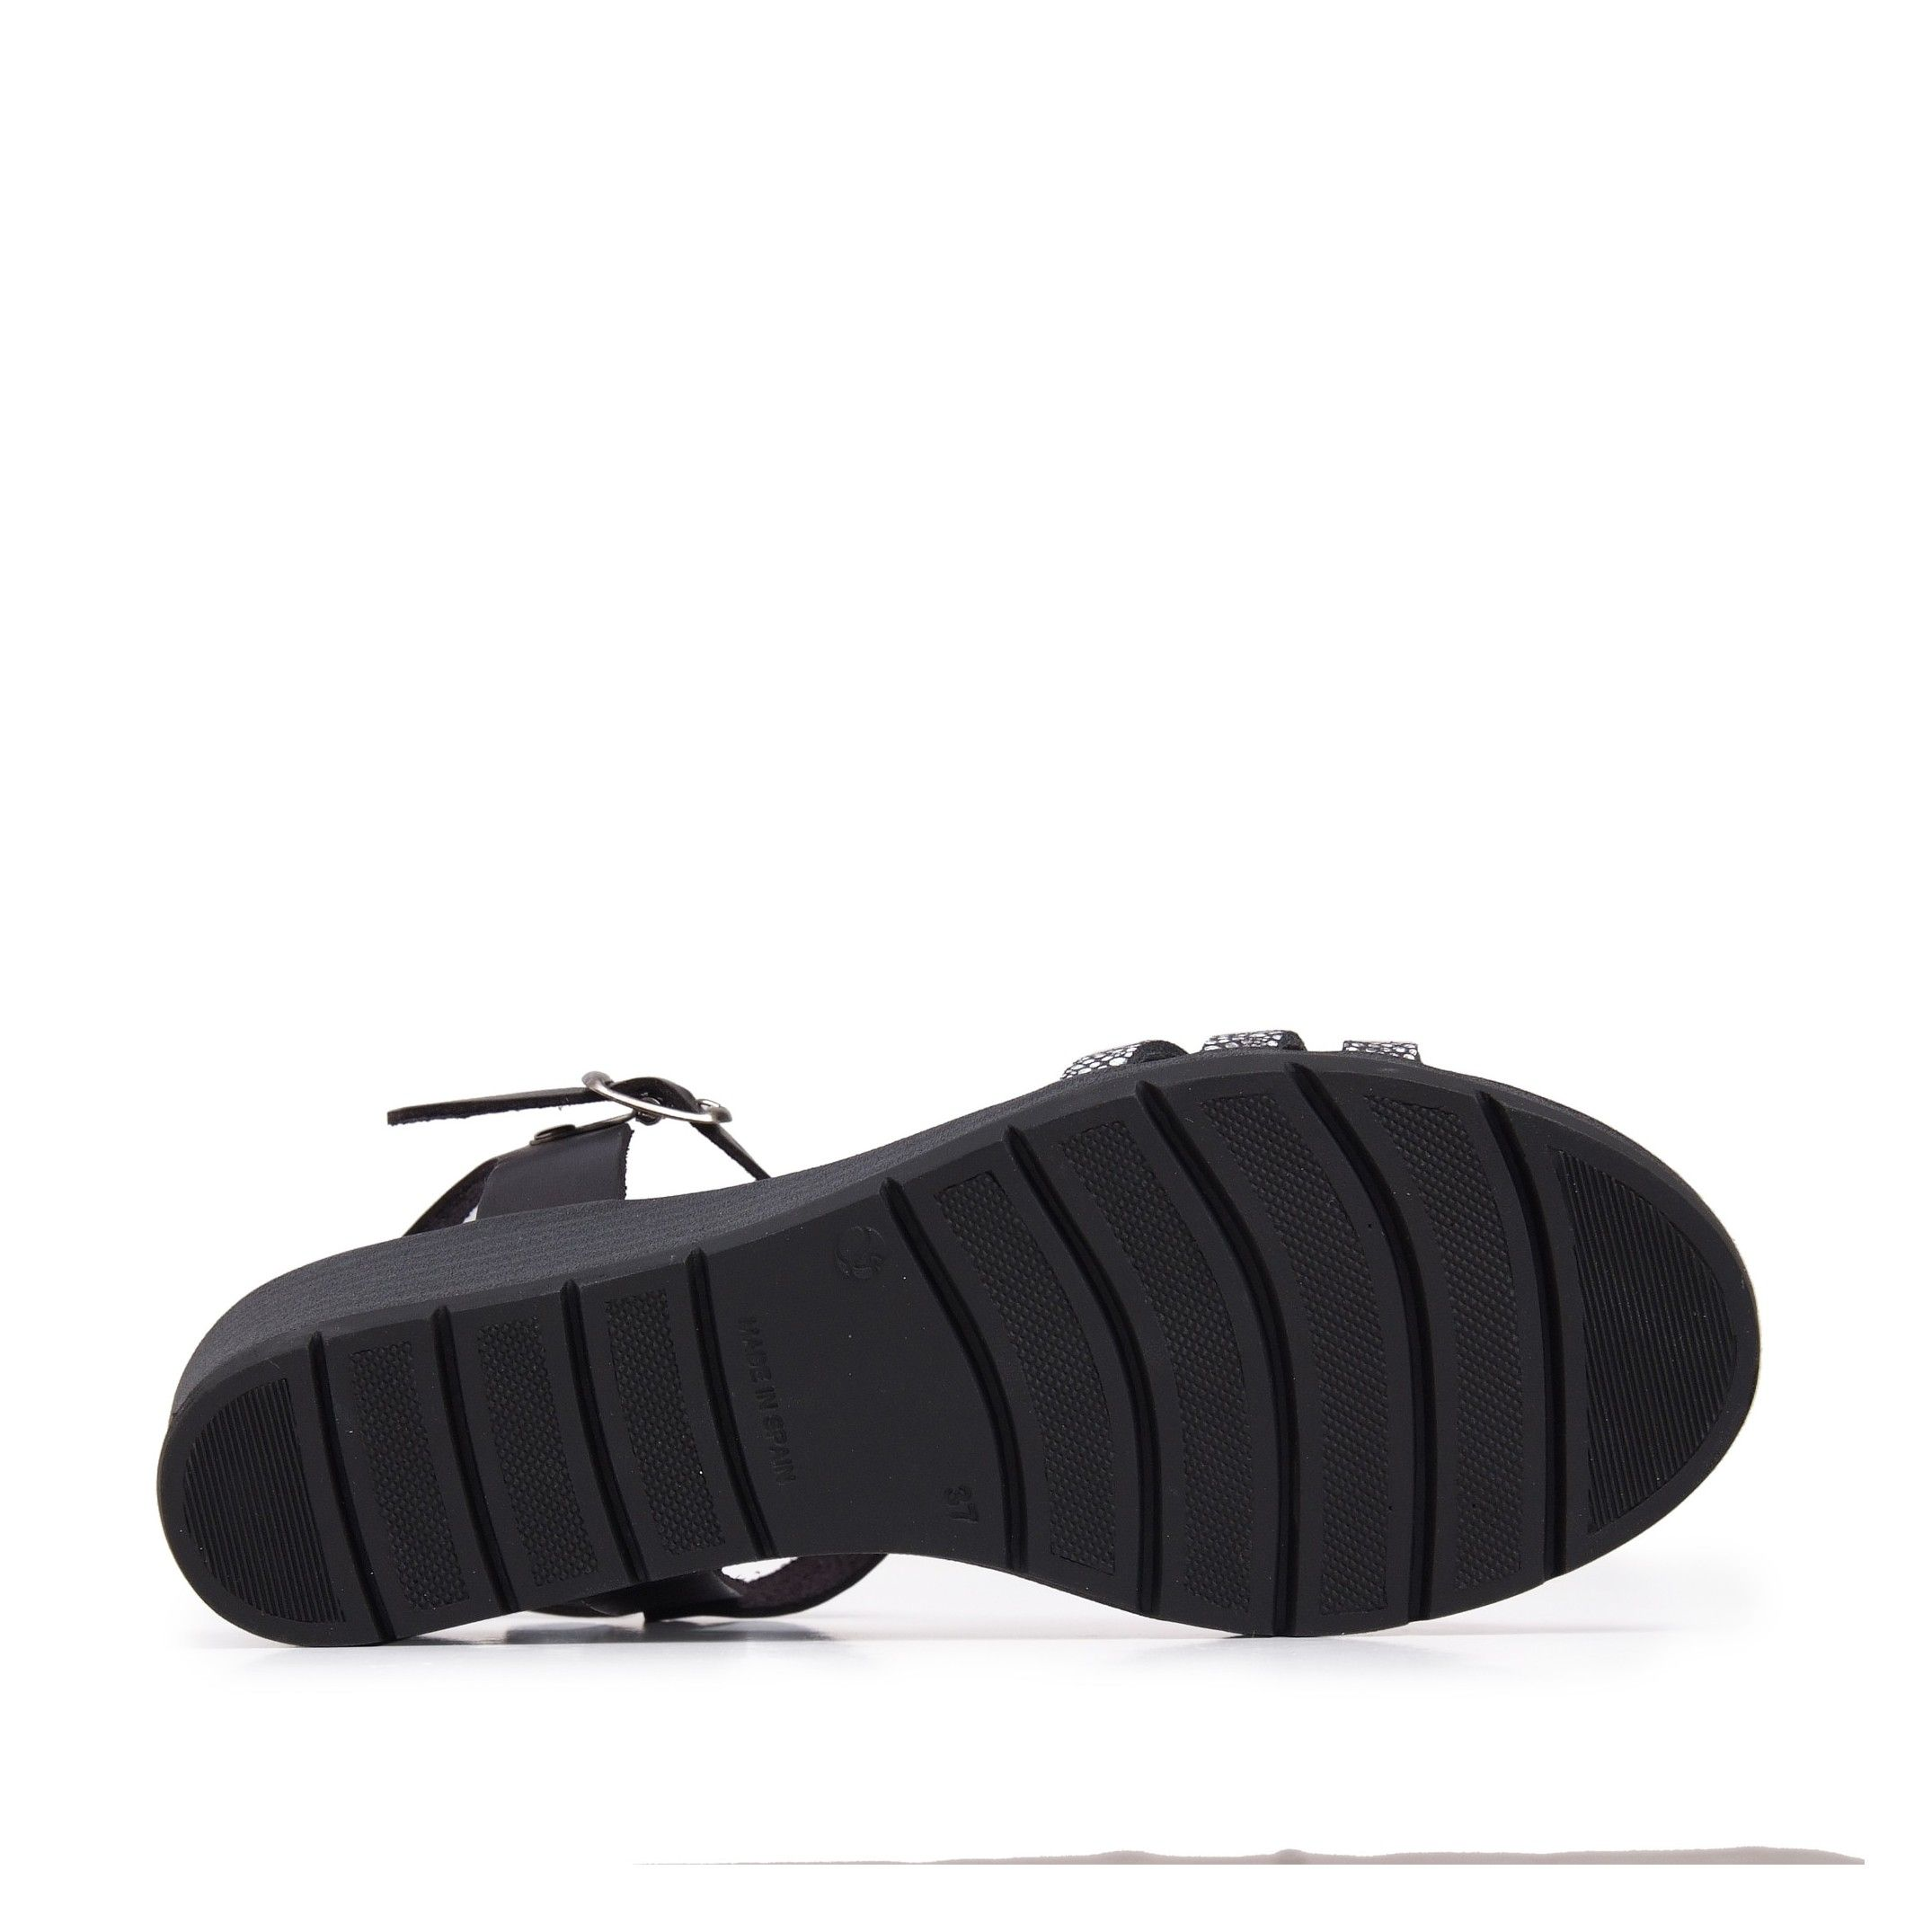 Women's Wedge Leather Sandals in Black